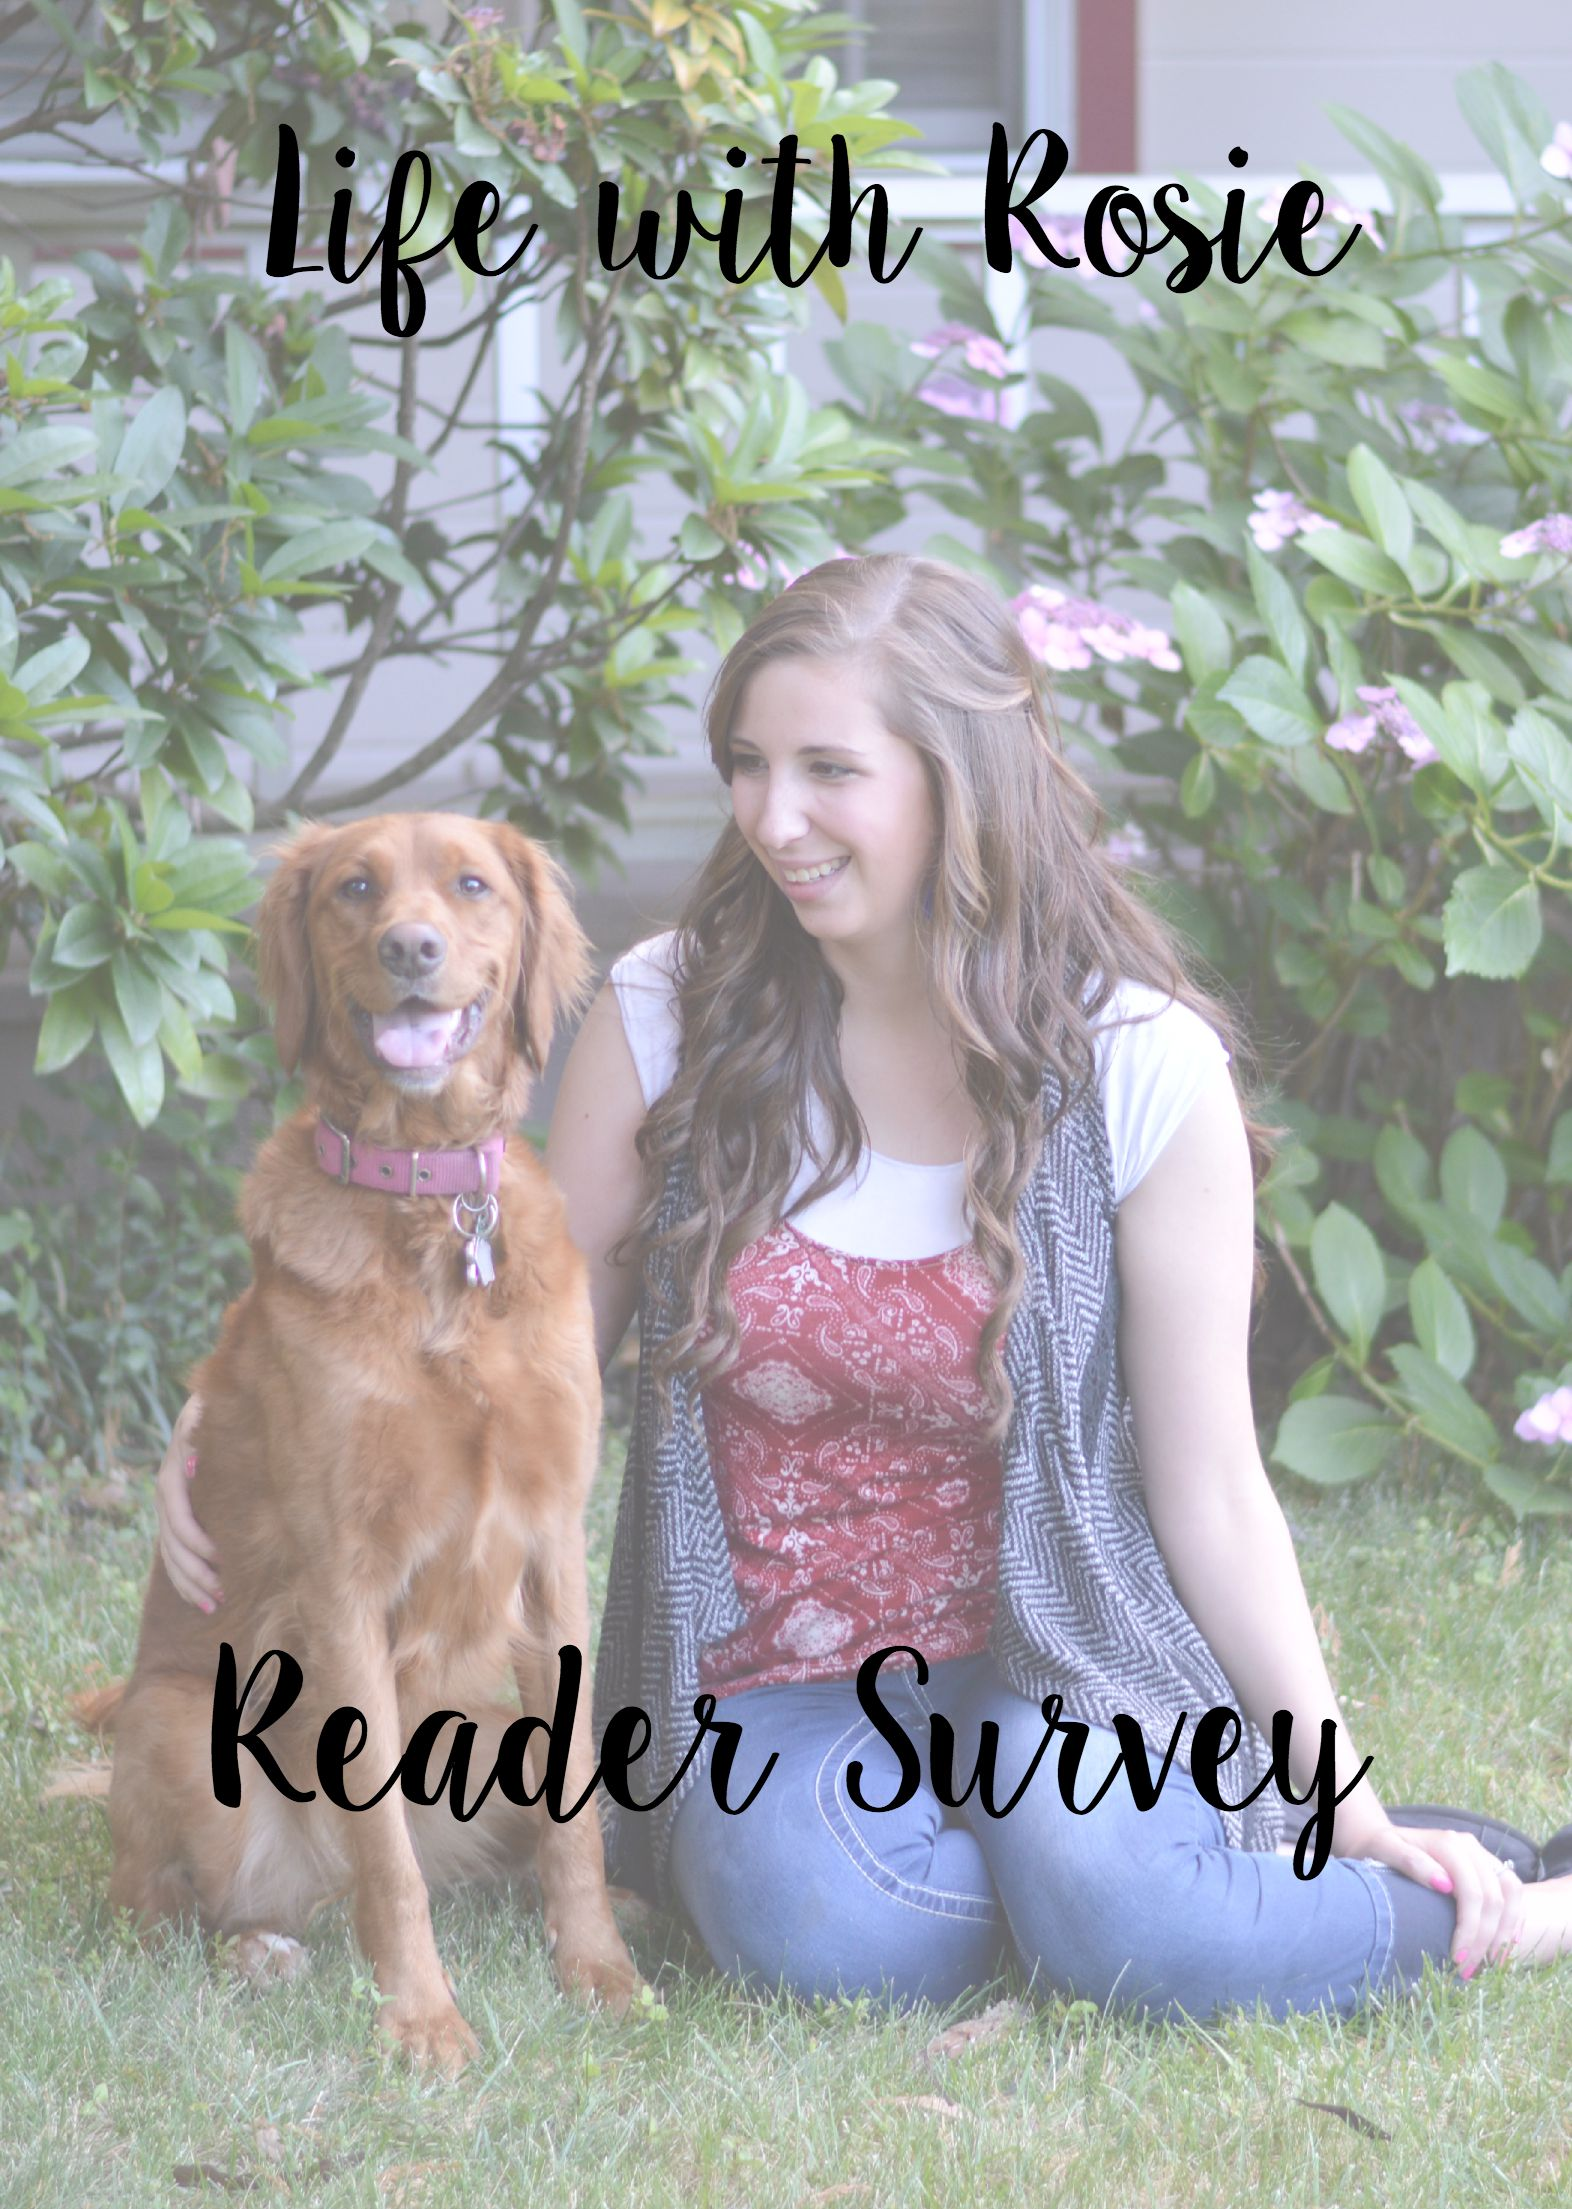 Reader Survey for LWR // Life with Rosie